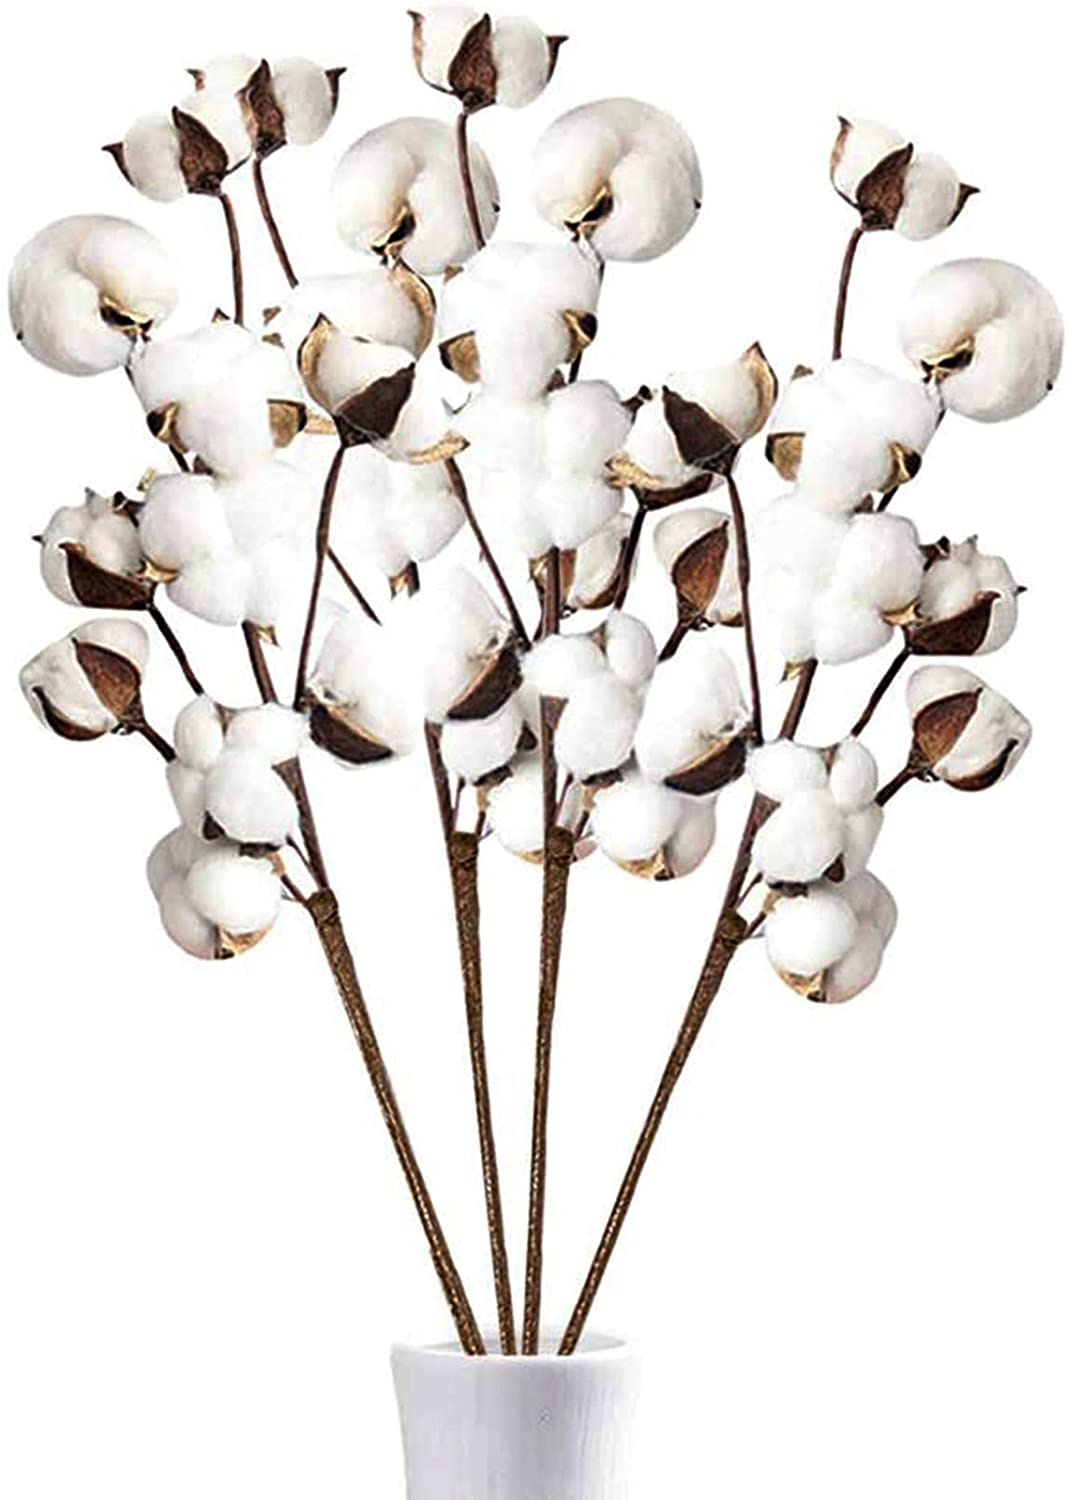 Dshengoo 4 Pcs Cotton Stems,Artificial Cotton Branche with 10 Balls,Farmhouse Decor Cotton Floral,Fall Decoration Cotton Picks for Home Wedding Party